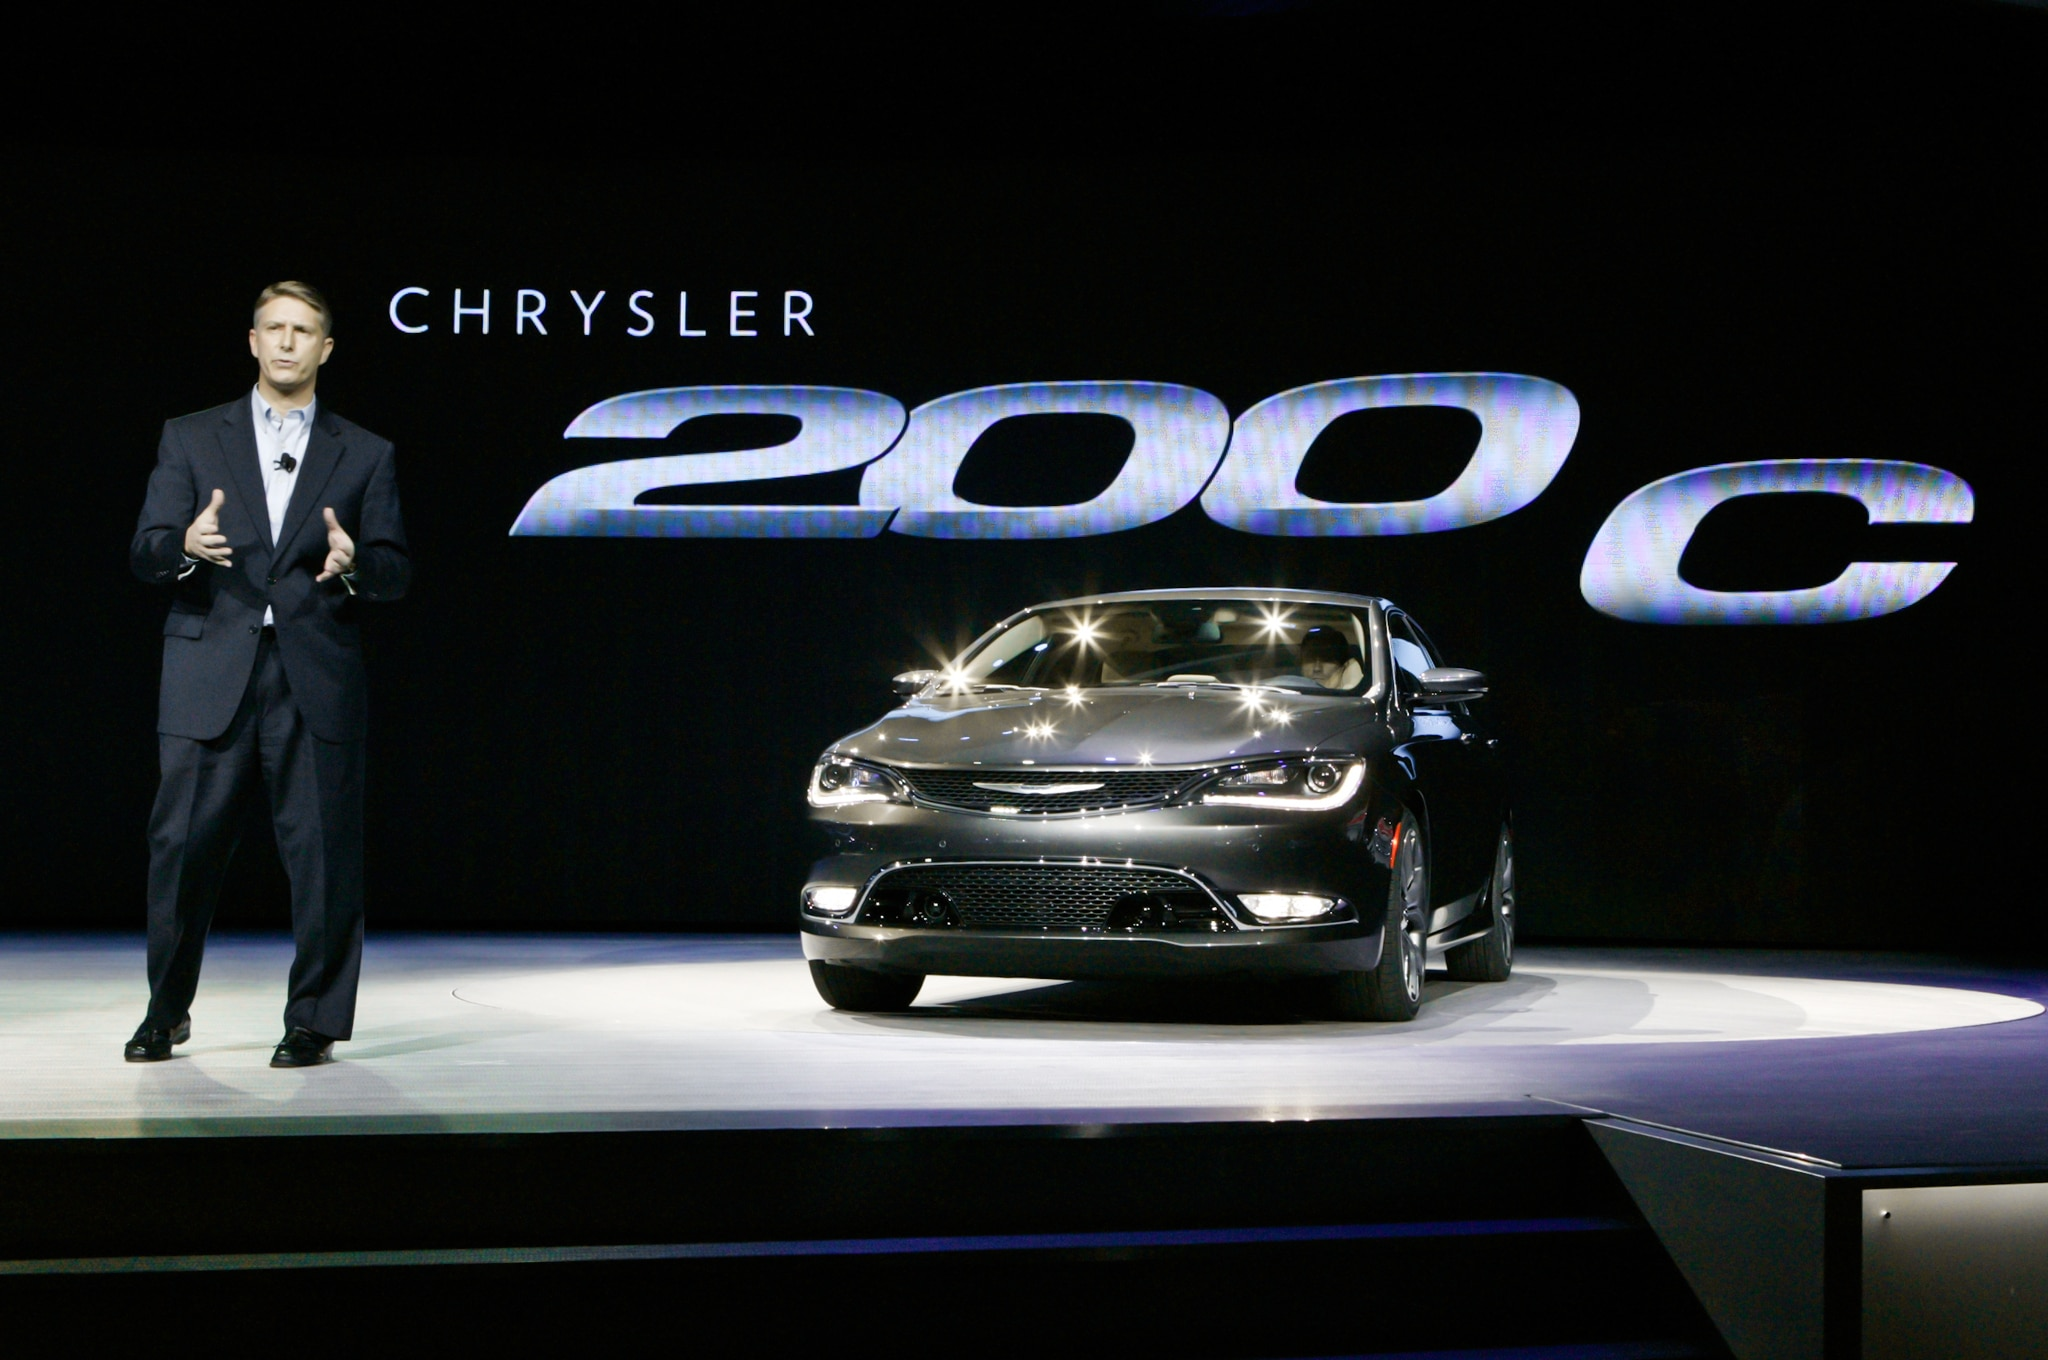 2015 Chrysler 200 C Front View On Stage